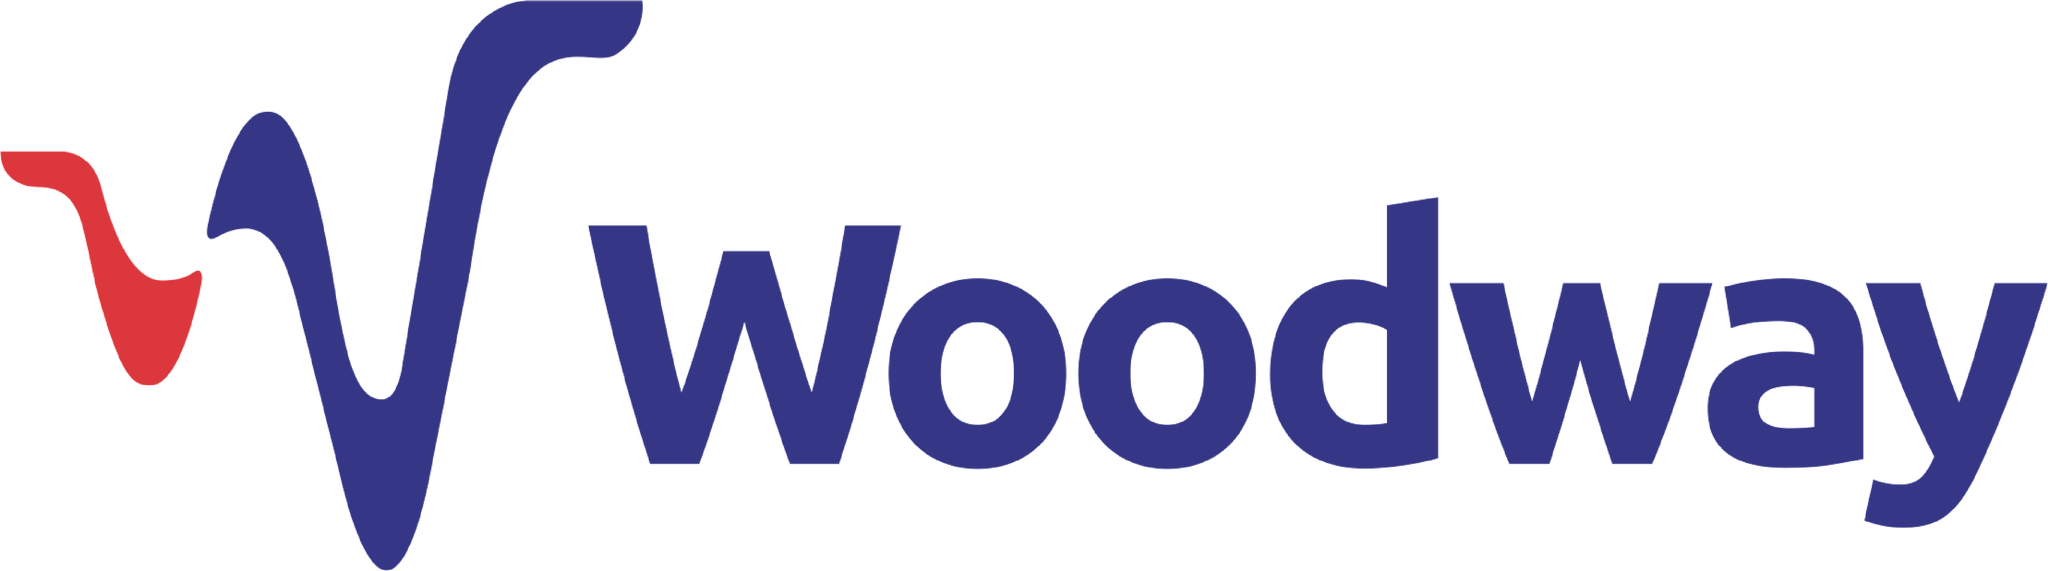 Woodway Engineering Ltd